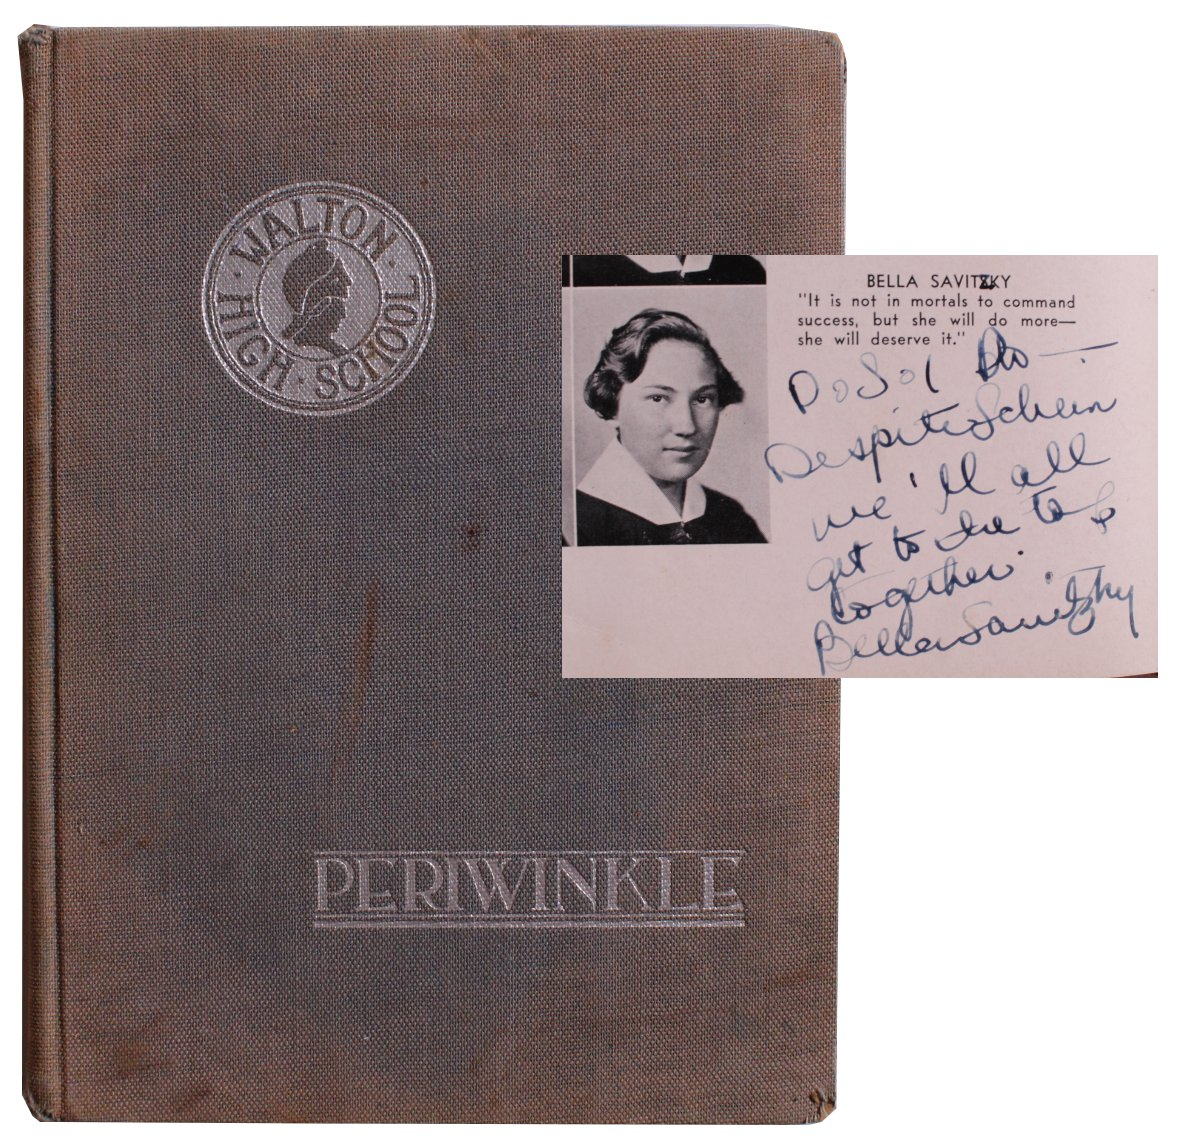 The Walton Periwinkle. [High School Yearbook Featuring Bella Abzug's Inscribed Senior Class Portrait